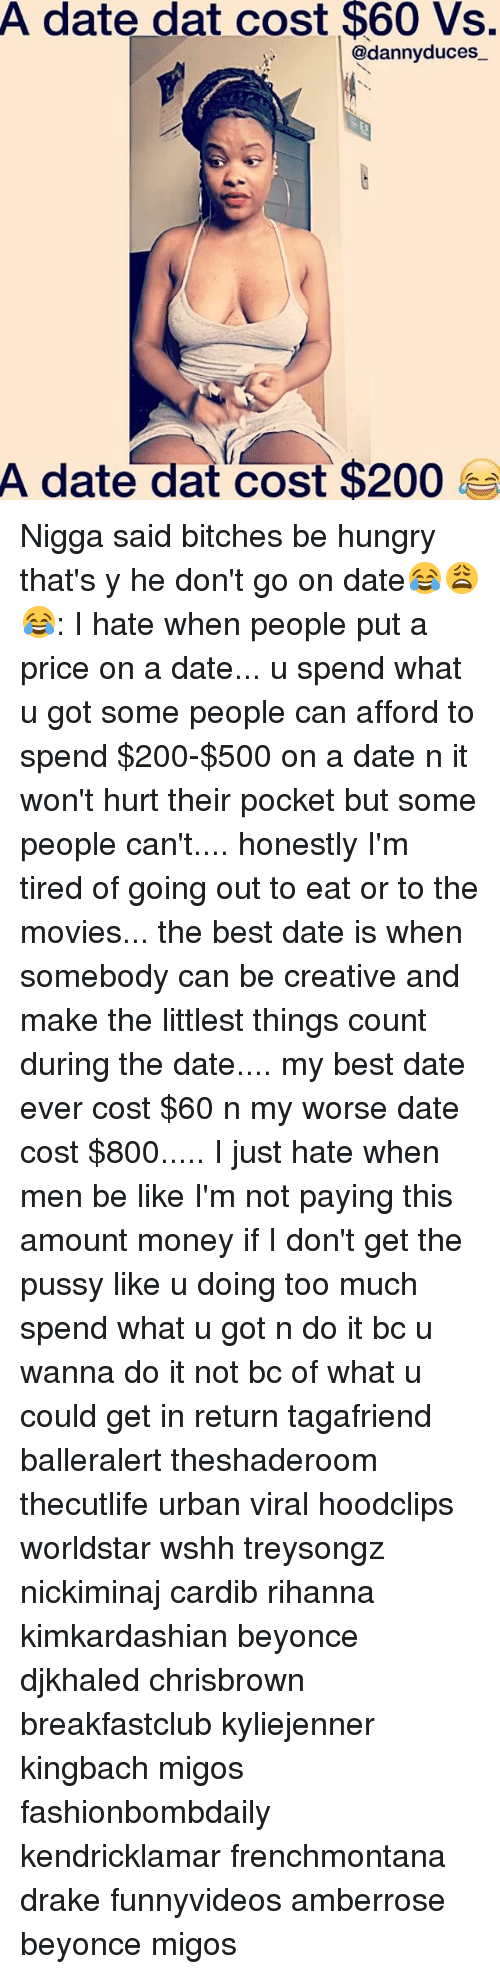 Bailey Jay, Be Like, and Beyonce: A date dat cost $60 Vs.  @danny duces  A date dat cost $200 Nigga said bitches be hungry that's y he don't go on date😂😩😂: I hate when people put a price on a date... u spend what u got some people can afford to spend $200-$500 on a date n it won't hurt their pocket but some people can't.... honestly I'm tired of going out to eat or to the movies... the best date is when somebody can be creative and make the littlest things count during the date.... my best date ever cost $60 n my worse date cost $800..... I just hate when men be like I'm not paying this amount money if I don't get the pussy like u doing too much spend what u got n do it bc u wanna do it not bc of what u could get in return tagafriend balleralert theshaderoom thecutlife urban viral hoodclips worldstar wshh treysongz nickiminaj cardib rihanna kimkardashian beyonce djkhaled chrisbrown breakfastclub kyliejenner kingbach migos fashionbombdaily kendricklamar frenchmontana drake funnyvideos amberrose beyonce migos